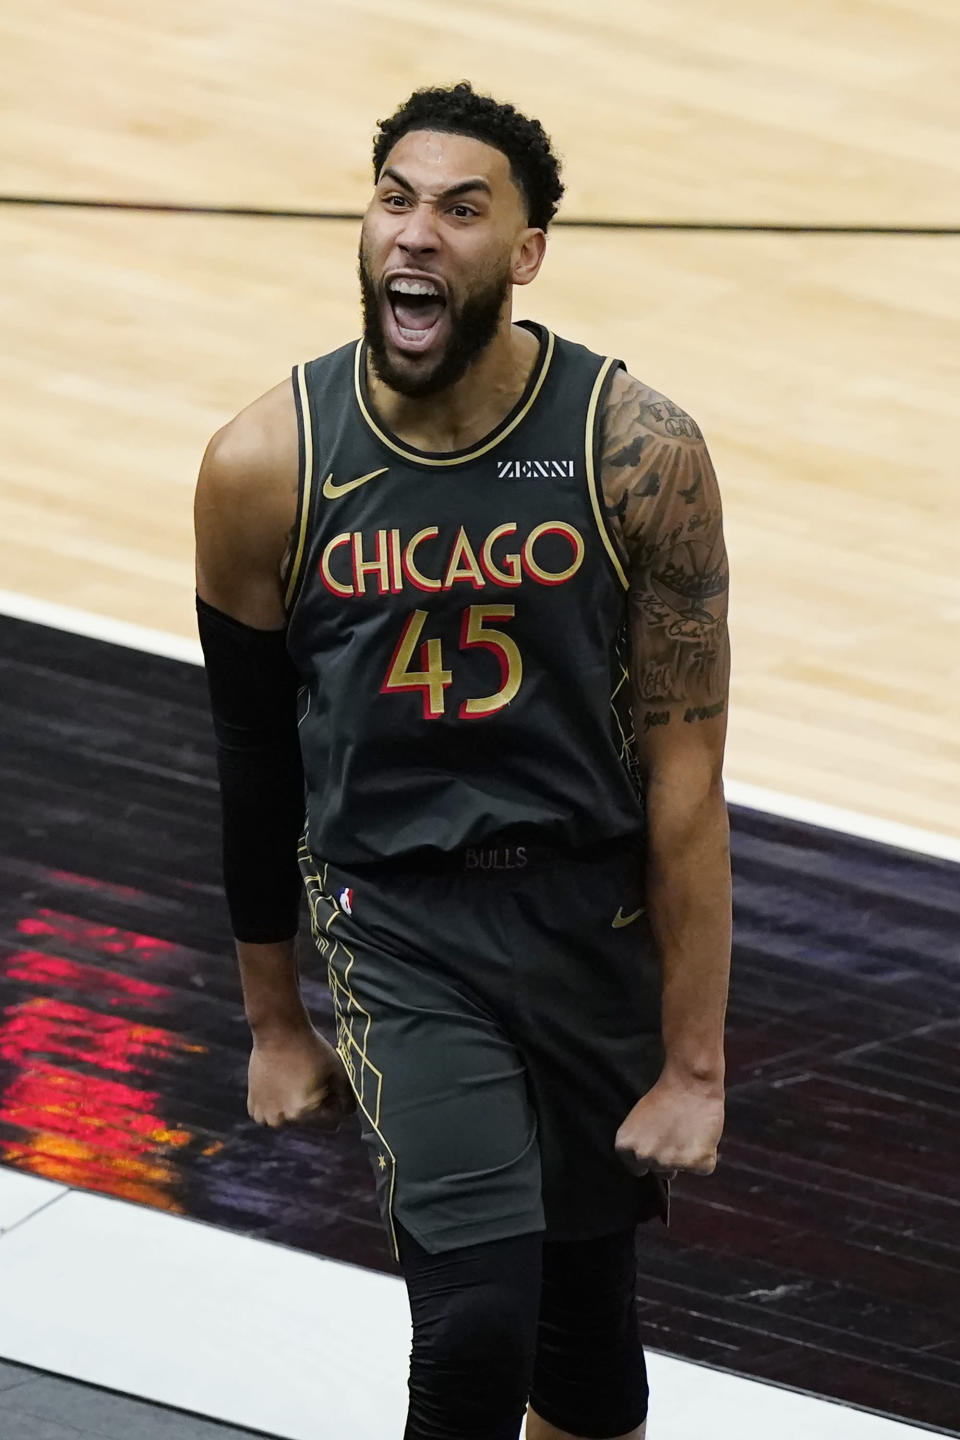 Chicago Bulls guard Denzel Valentine reacts after making a three-point basket during the second half of an NBA basketball game against the Toronto Raptors in Chicago, Sunday, March 14, 2021. (AP Photo/Nam Y. Huh)